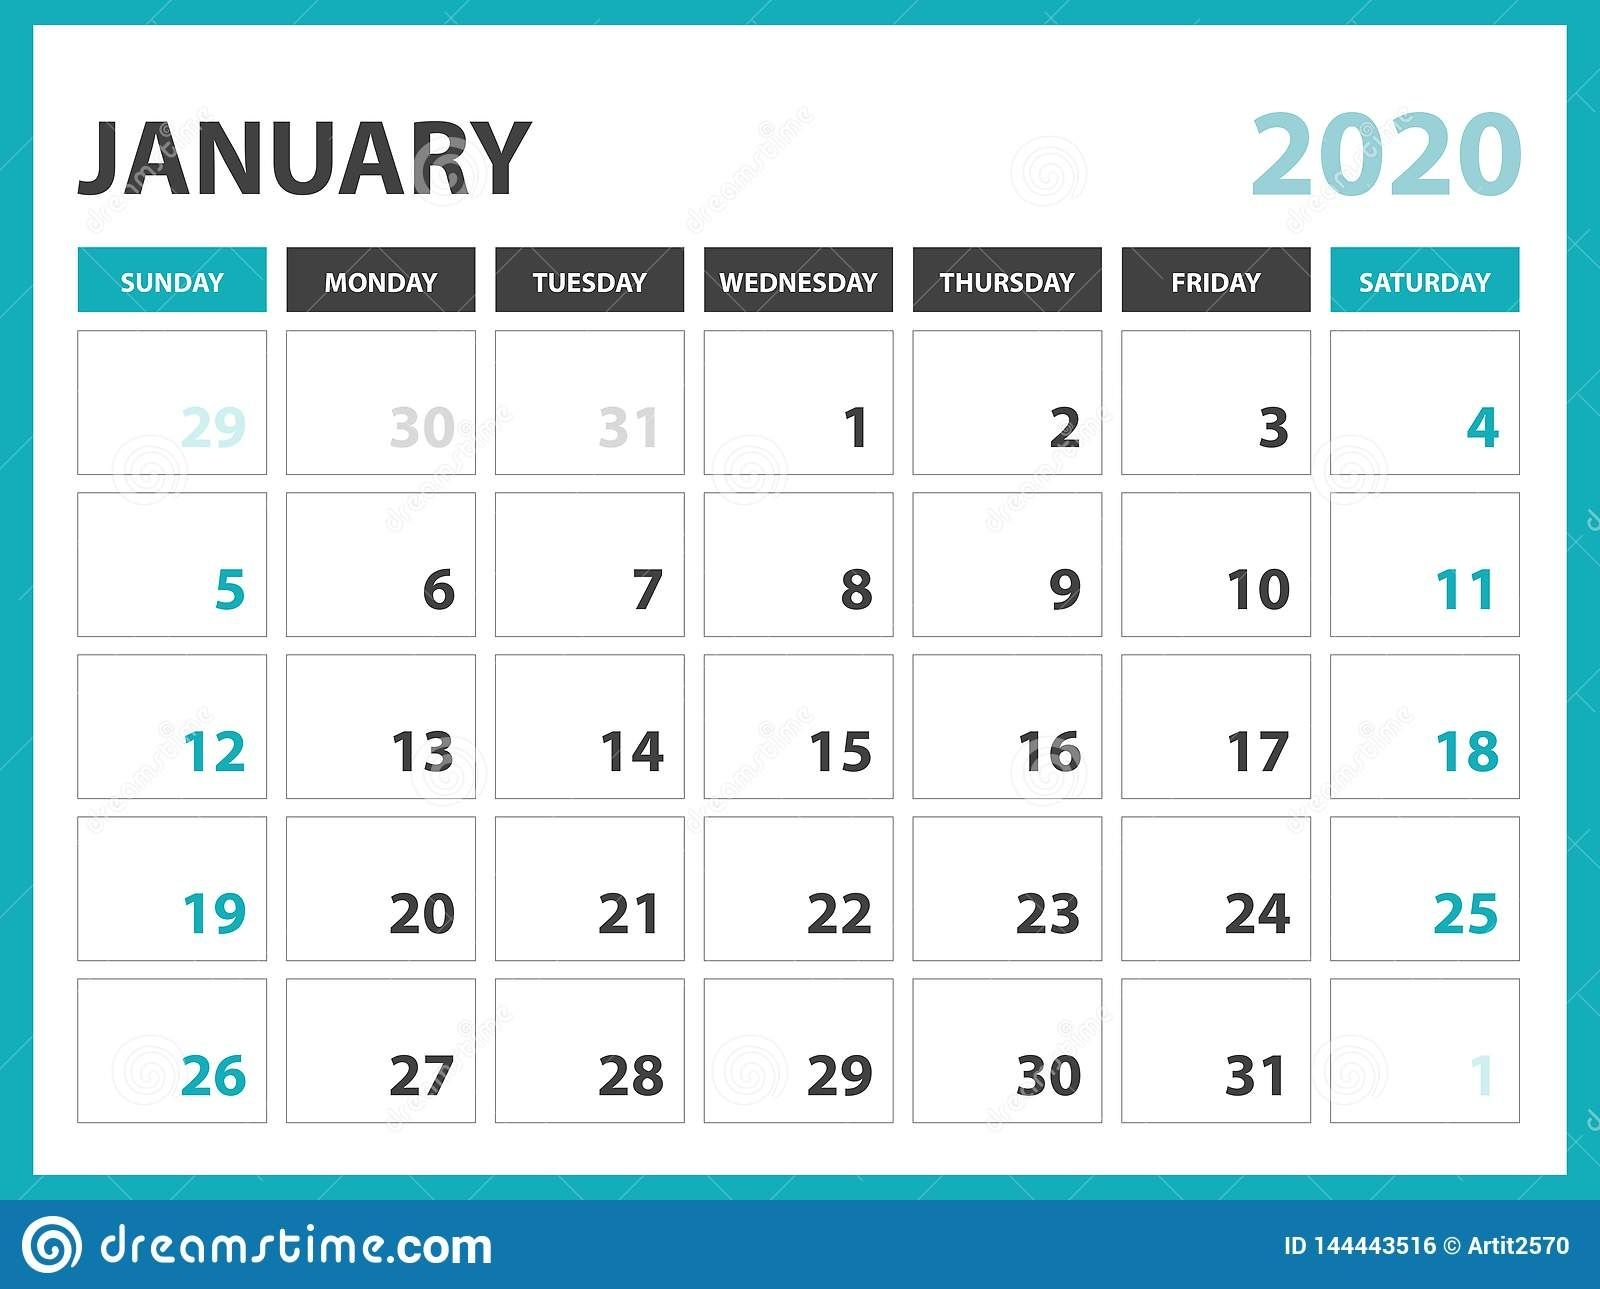 Desk Calendar Layout Size 8 X 6 Inch, January 2020 Calendar